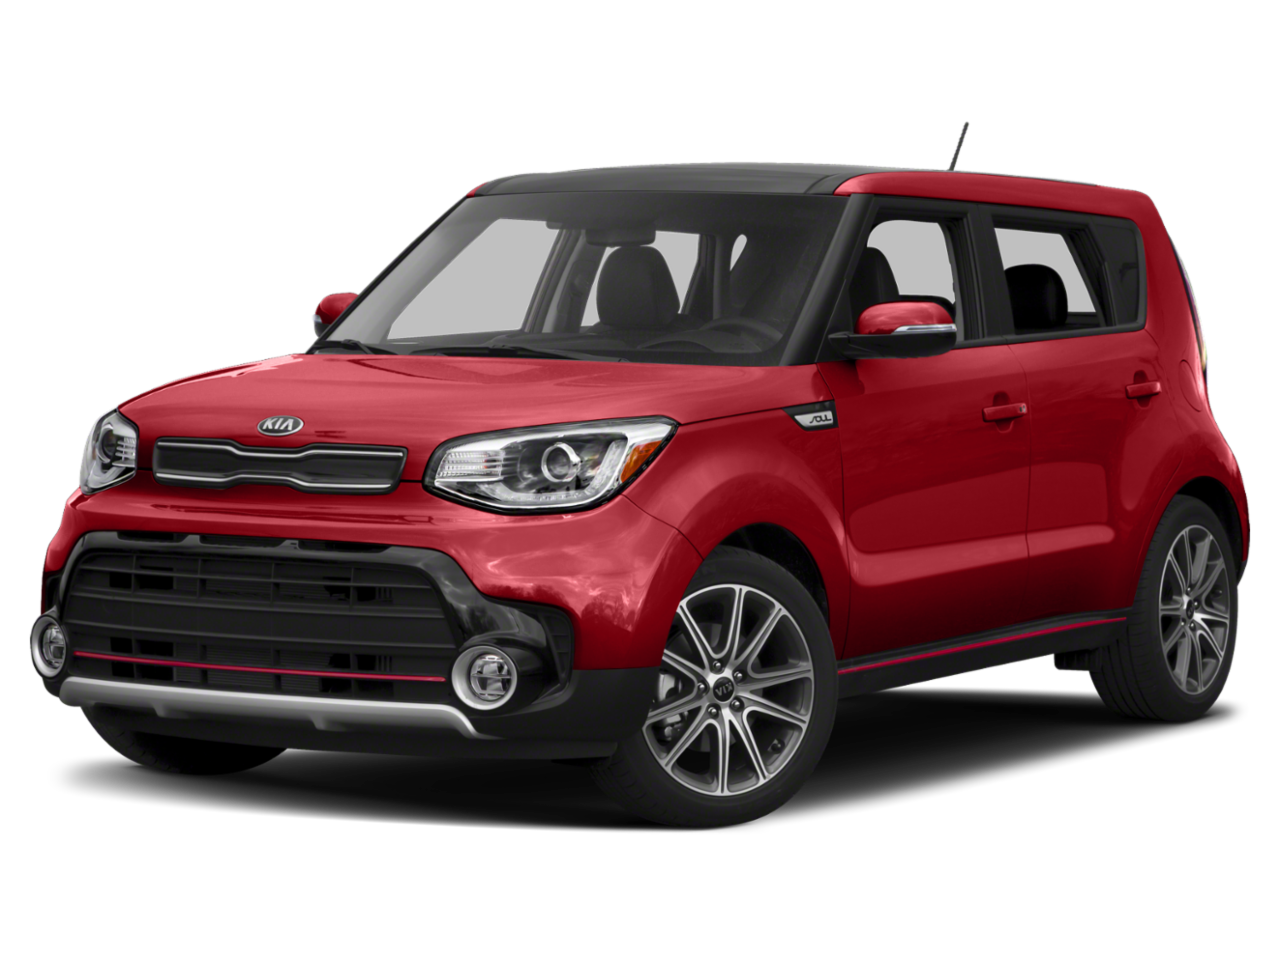 Buyer's Guide: 2019 Kia Soul